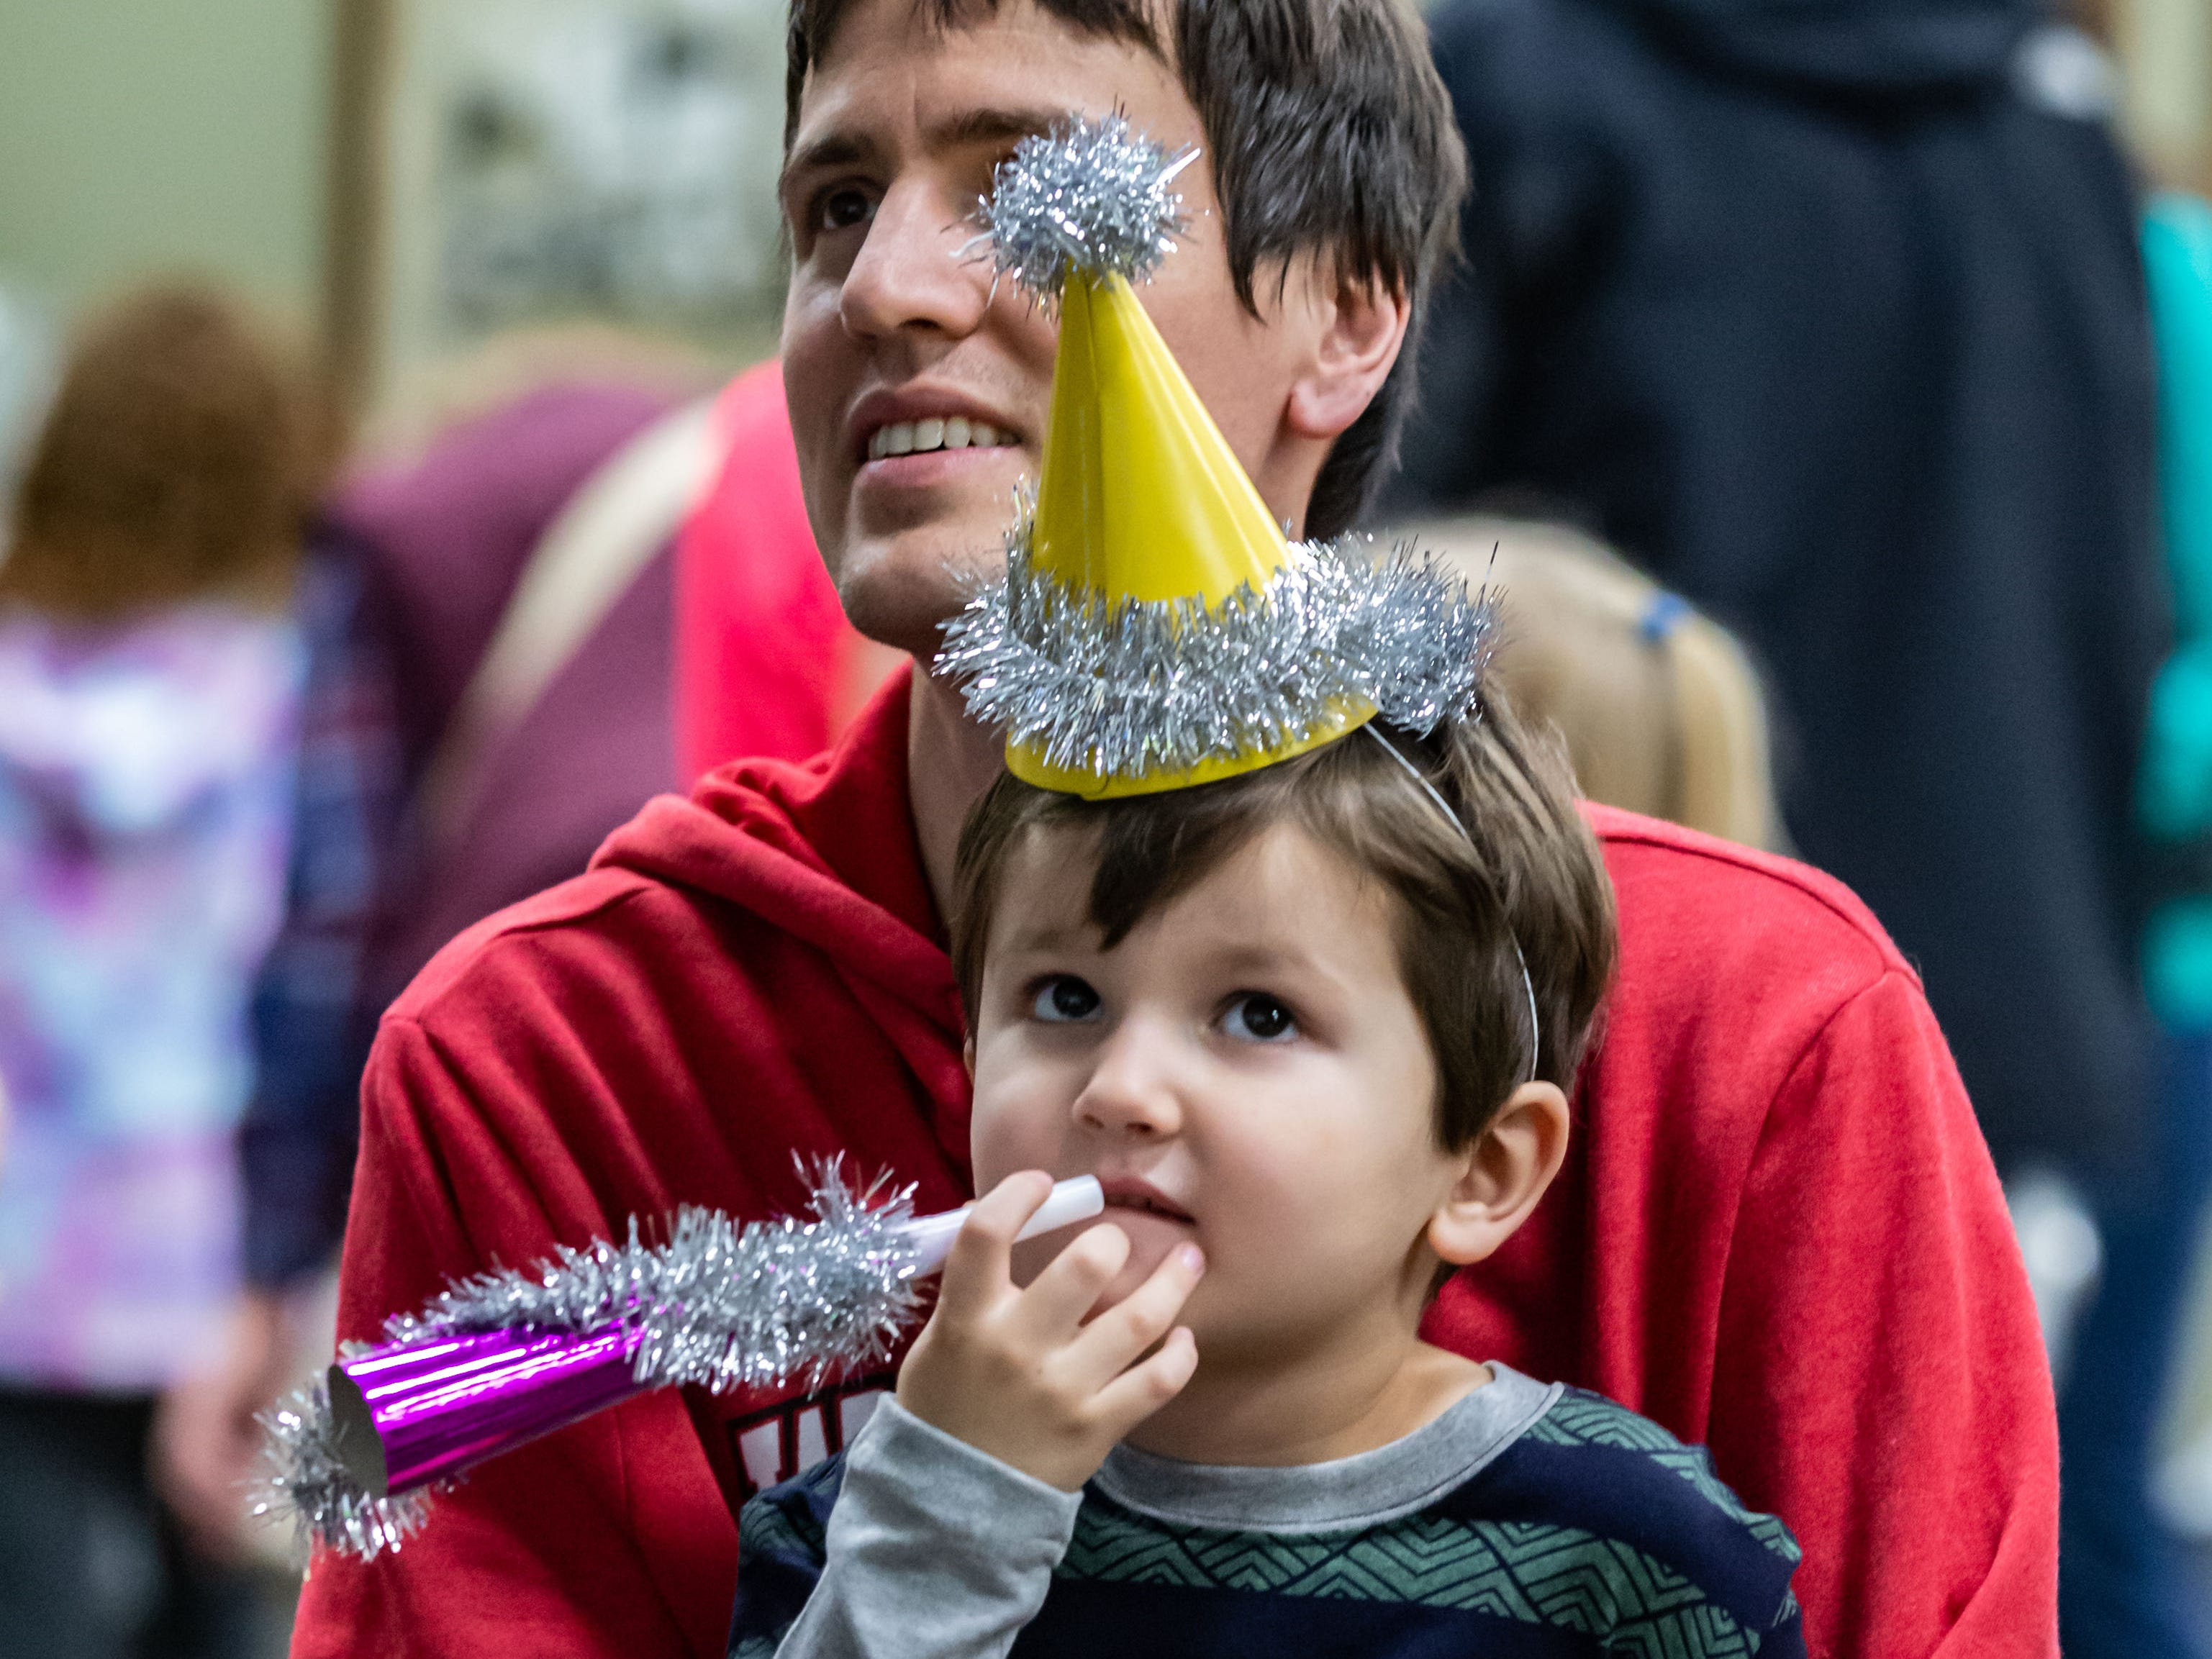 """Brandon Schultz of Mukwonago enjoys a music video with his son Owen, 4, during the """"Noon Year's Eve"""" party at the Mukwonago Community Library on Friday, Dec. 28, 2018. The family friendly event featured crafts, music, dancing and a balloon drop at noon."""